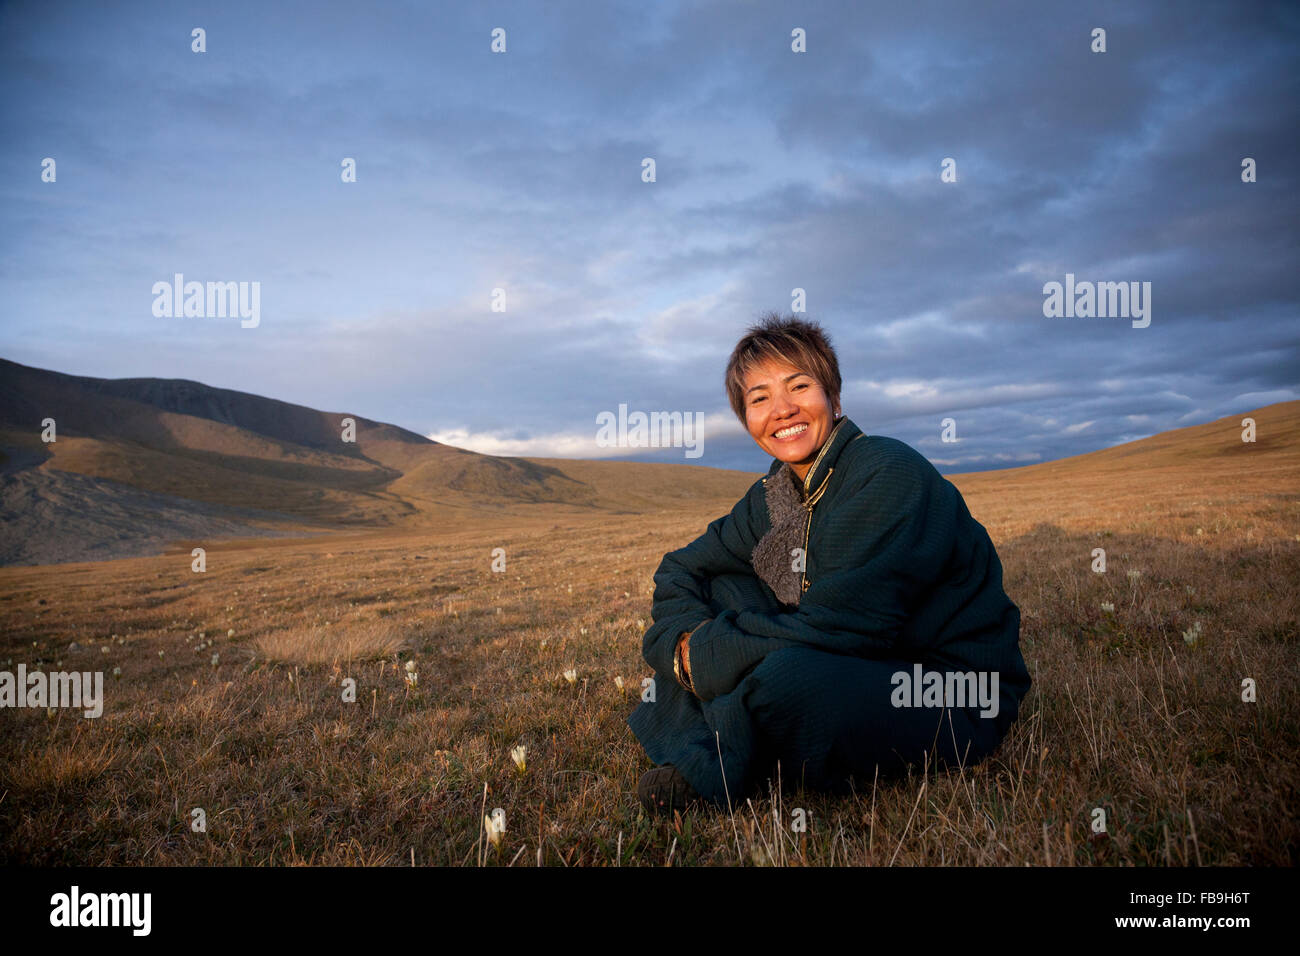 Tseren Enebish of Tseren Tours relaxing at sunset in the Kharkhiraa valley in far-western Mongolia. - Stock Image